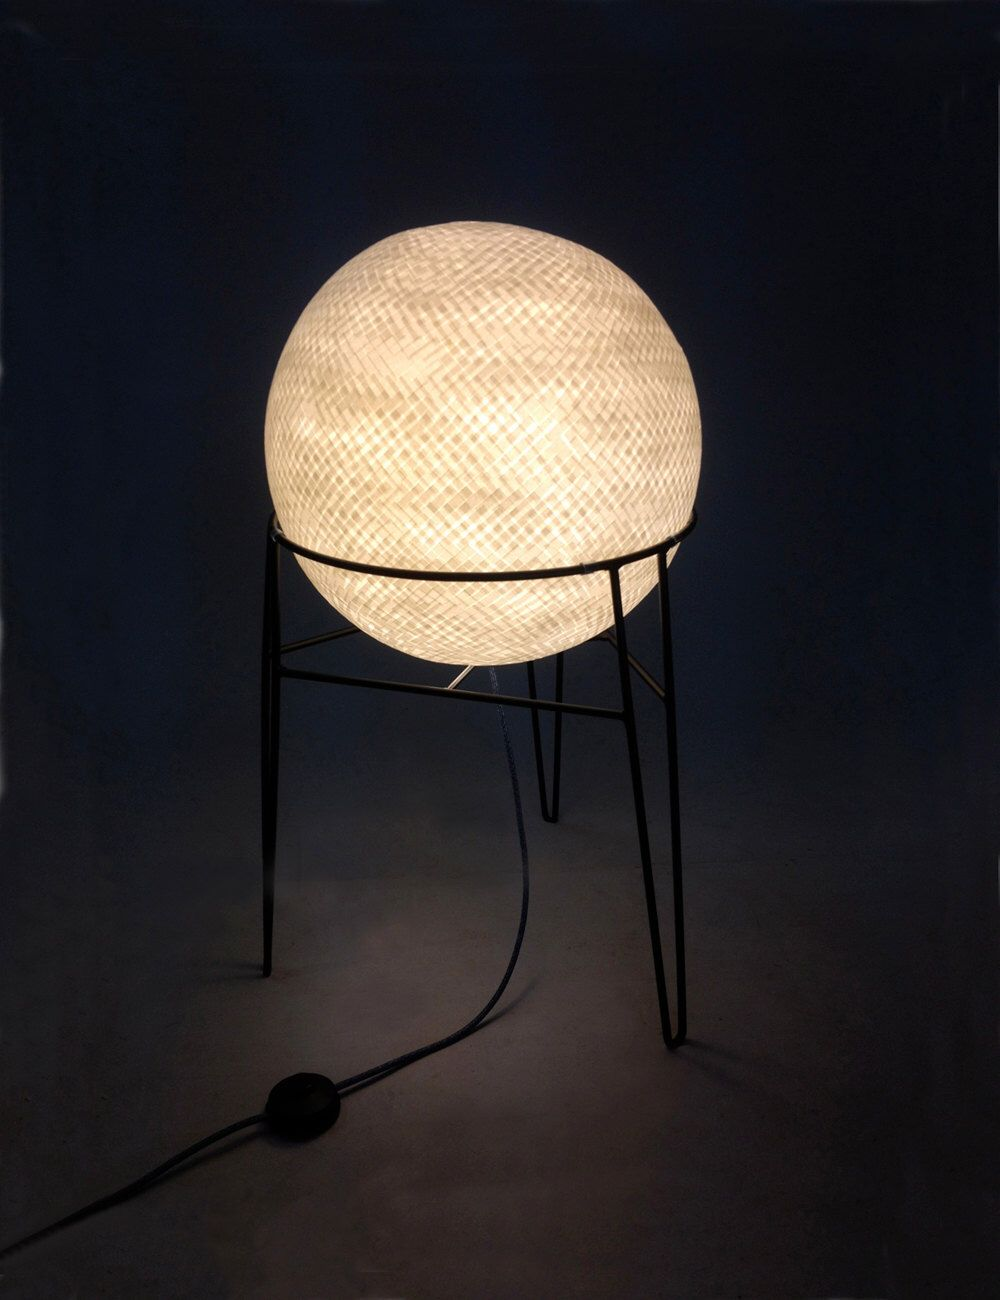 Paper floor lamp japanese paper lamp tripod lamp japanese paper floor lamp japanese paper lamp tripod lamp japanese paper cotton jean textile cable by dioshop on etsy aloadofball Images